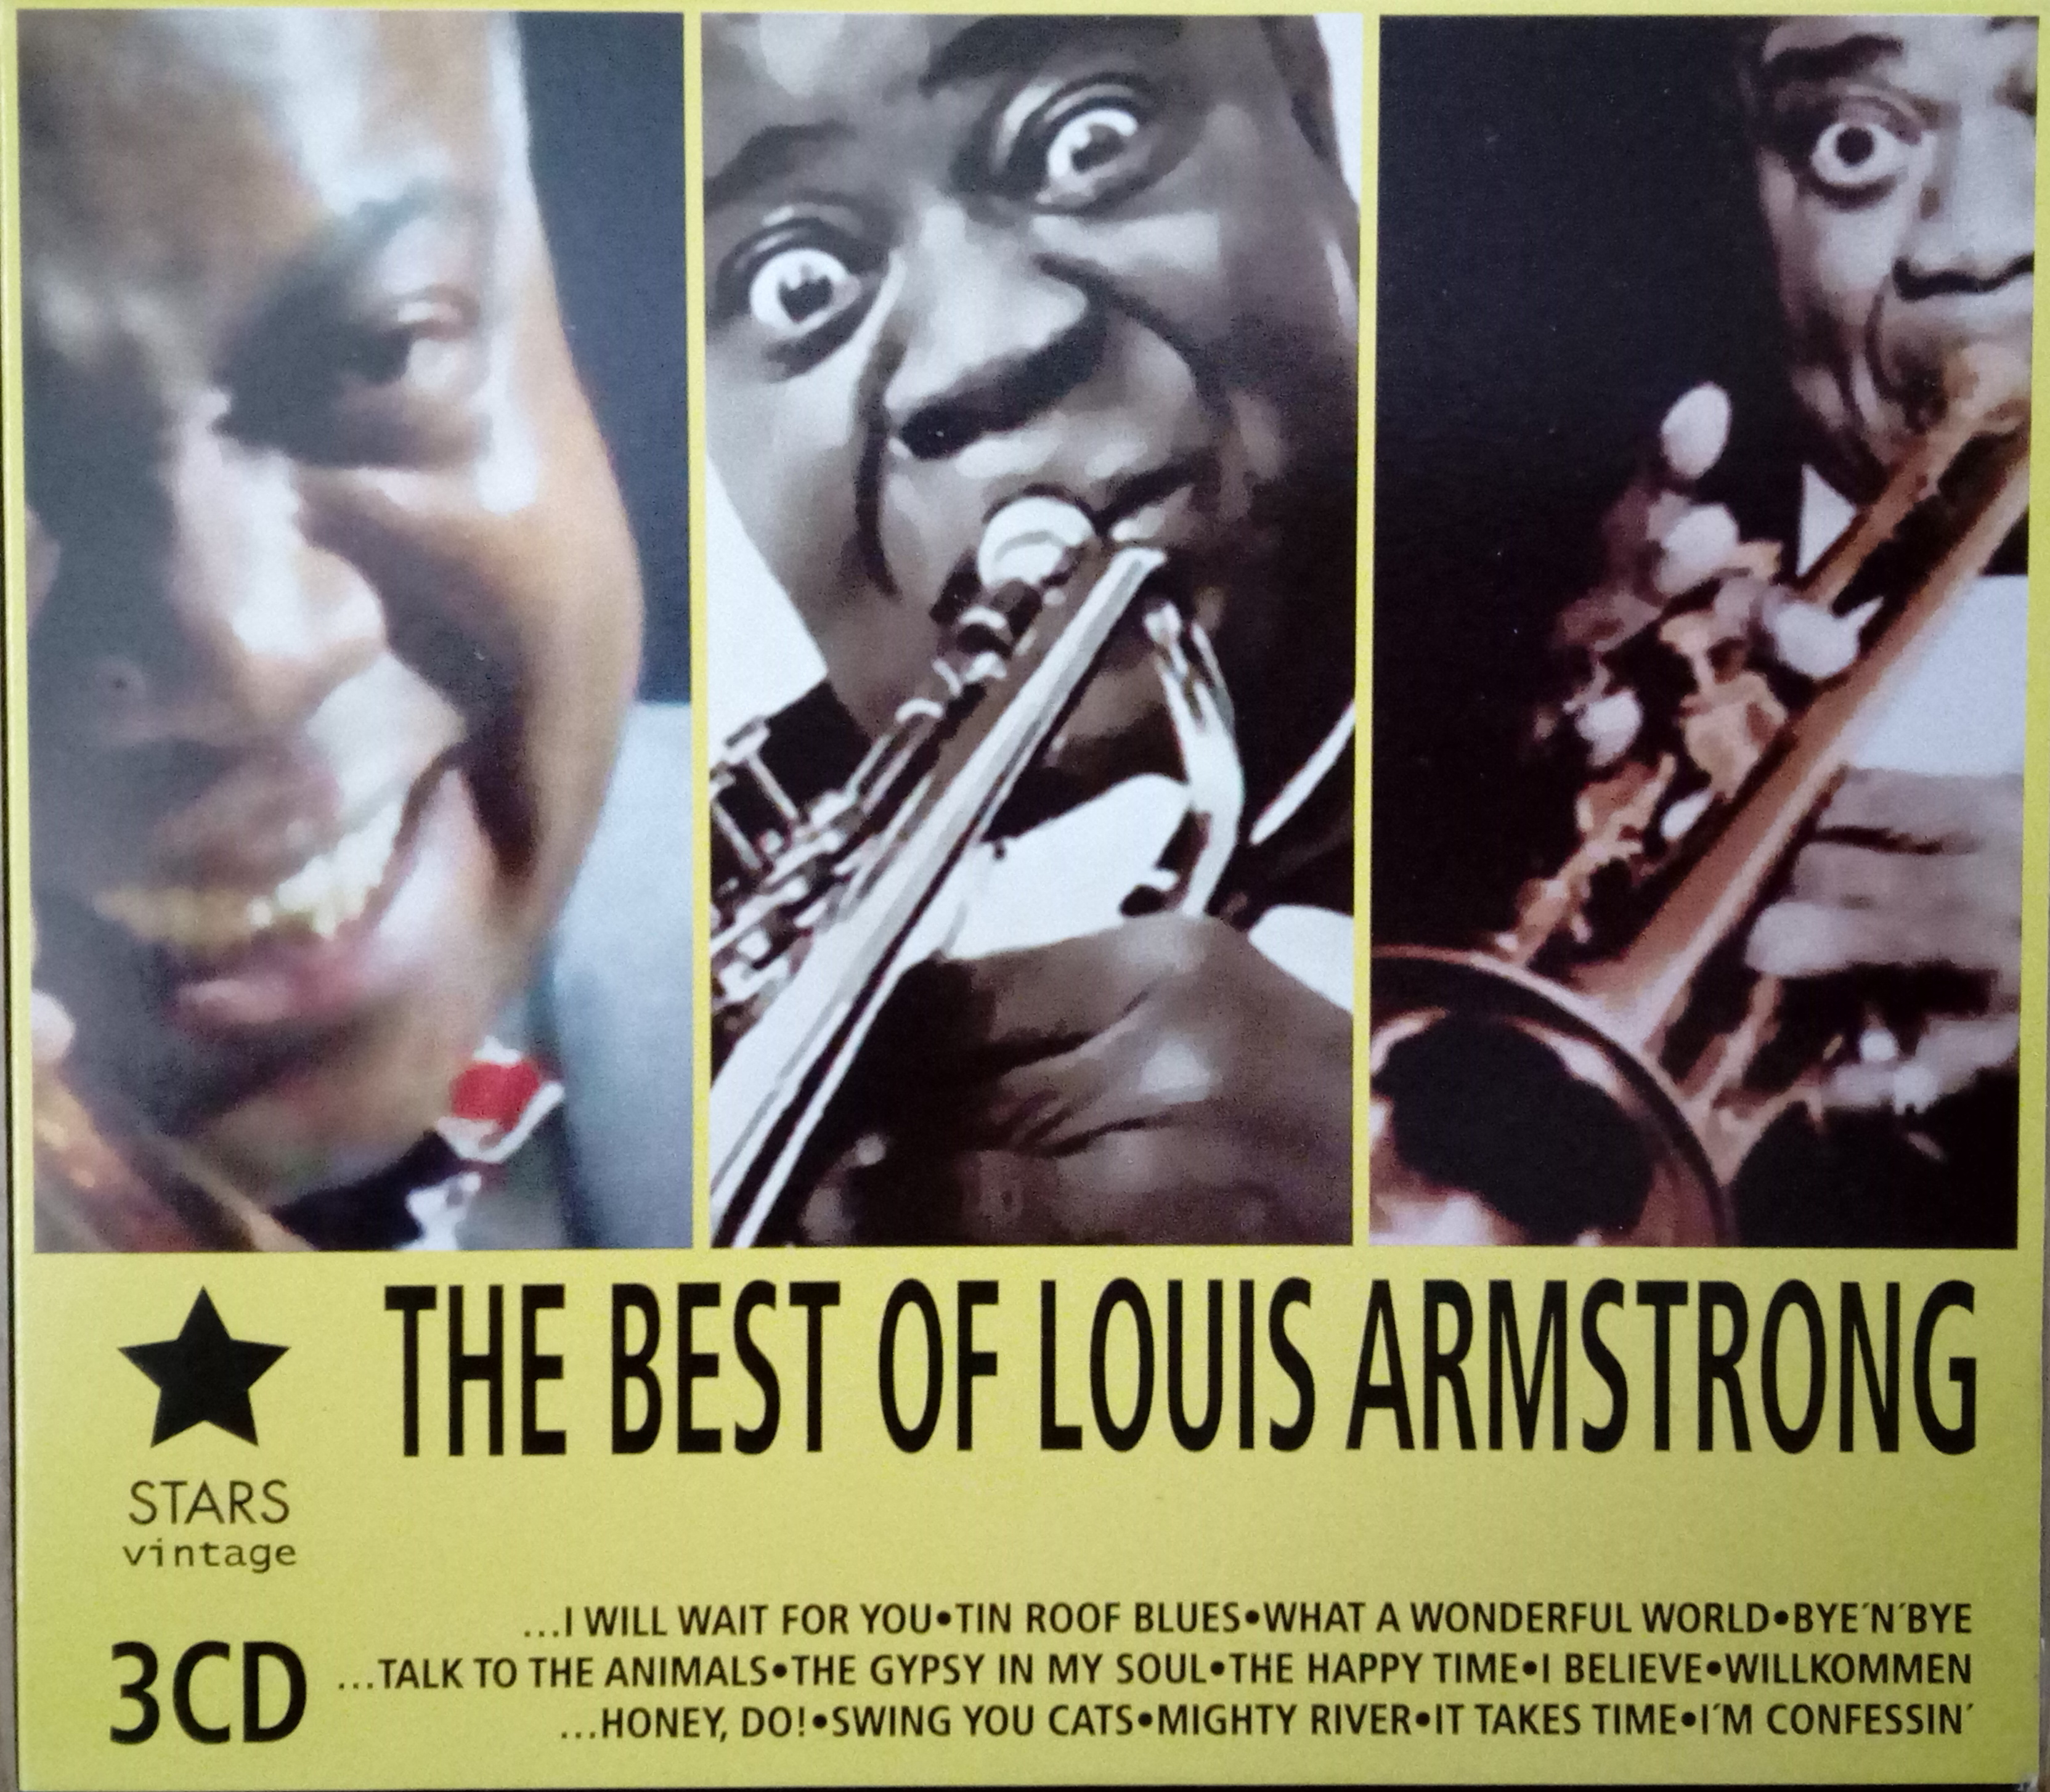 The best of Louis Armstrong 3CD